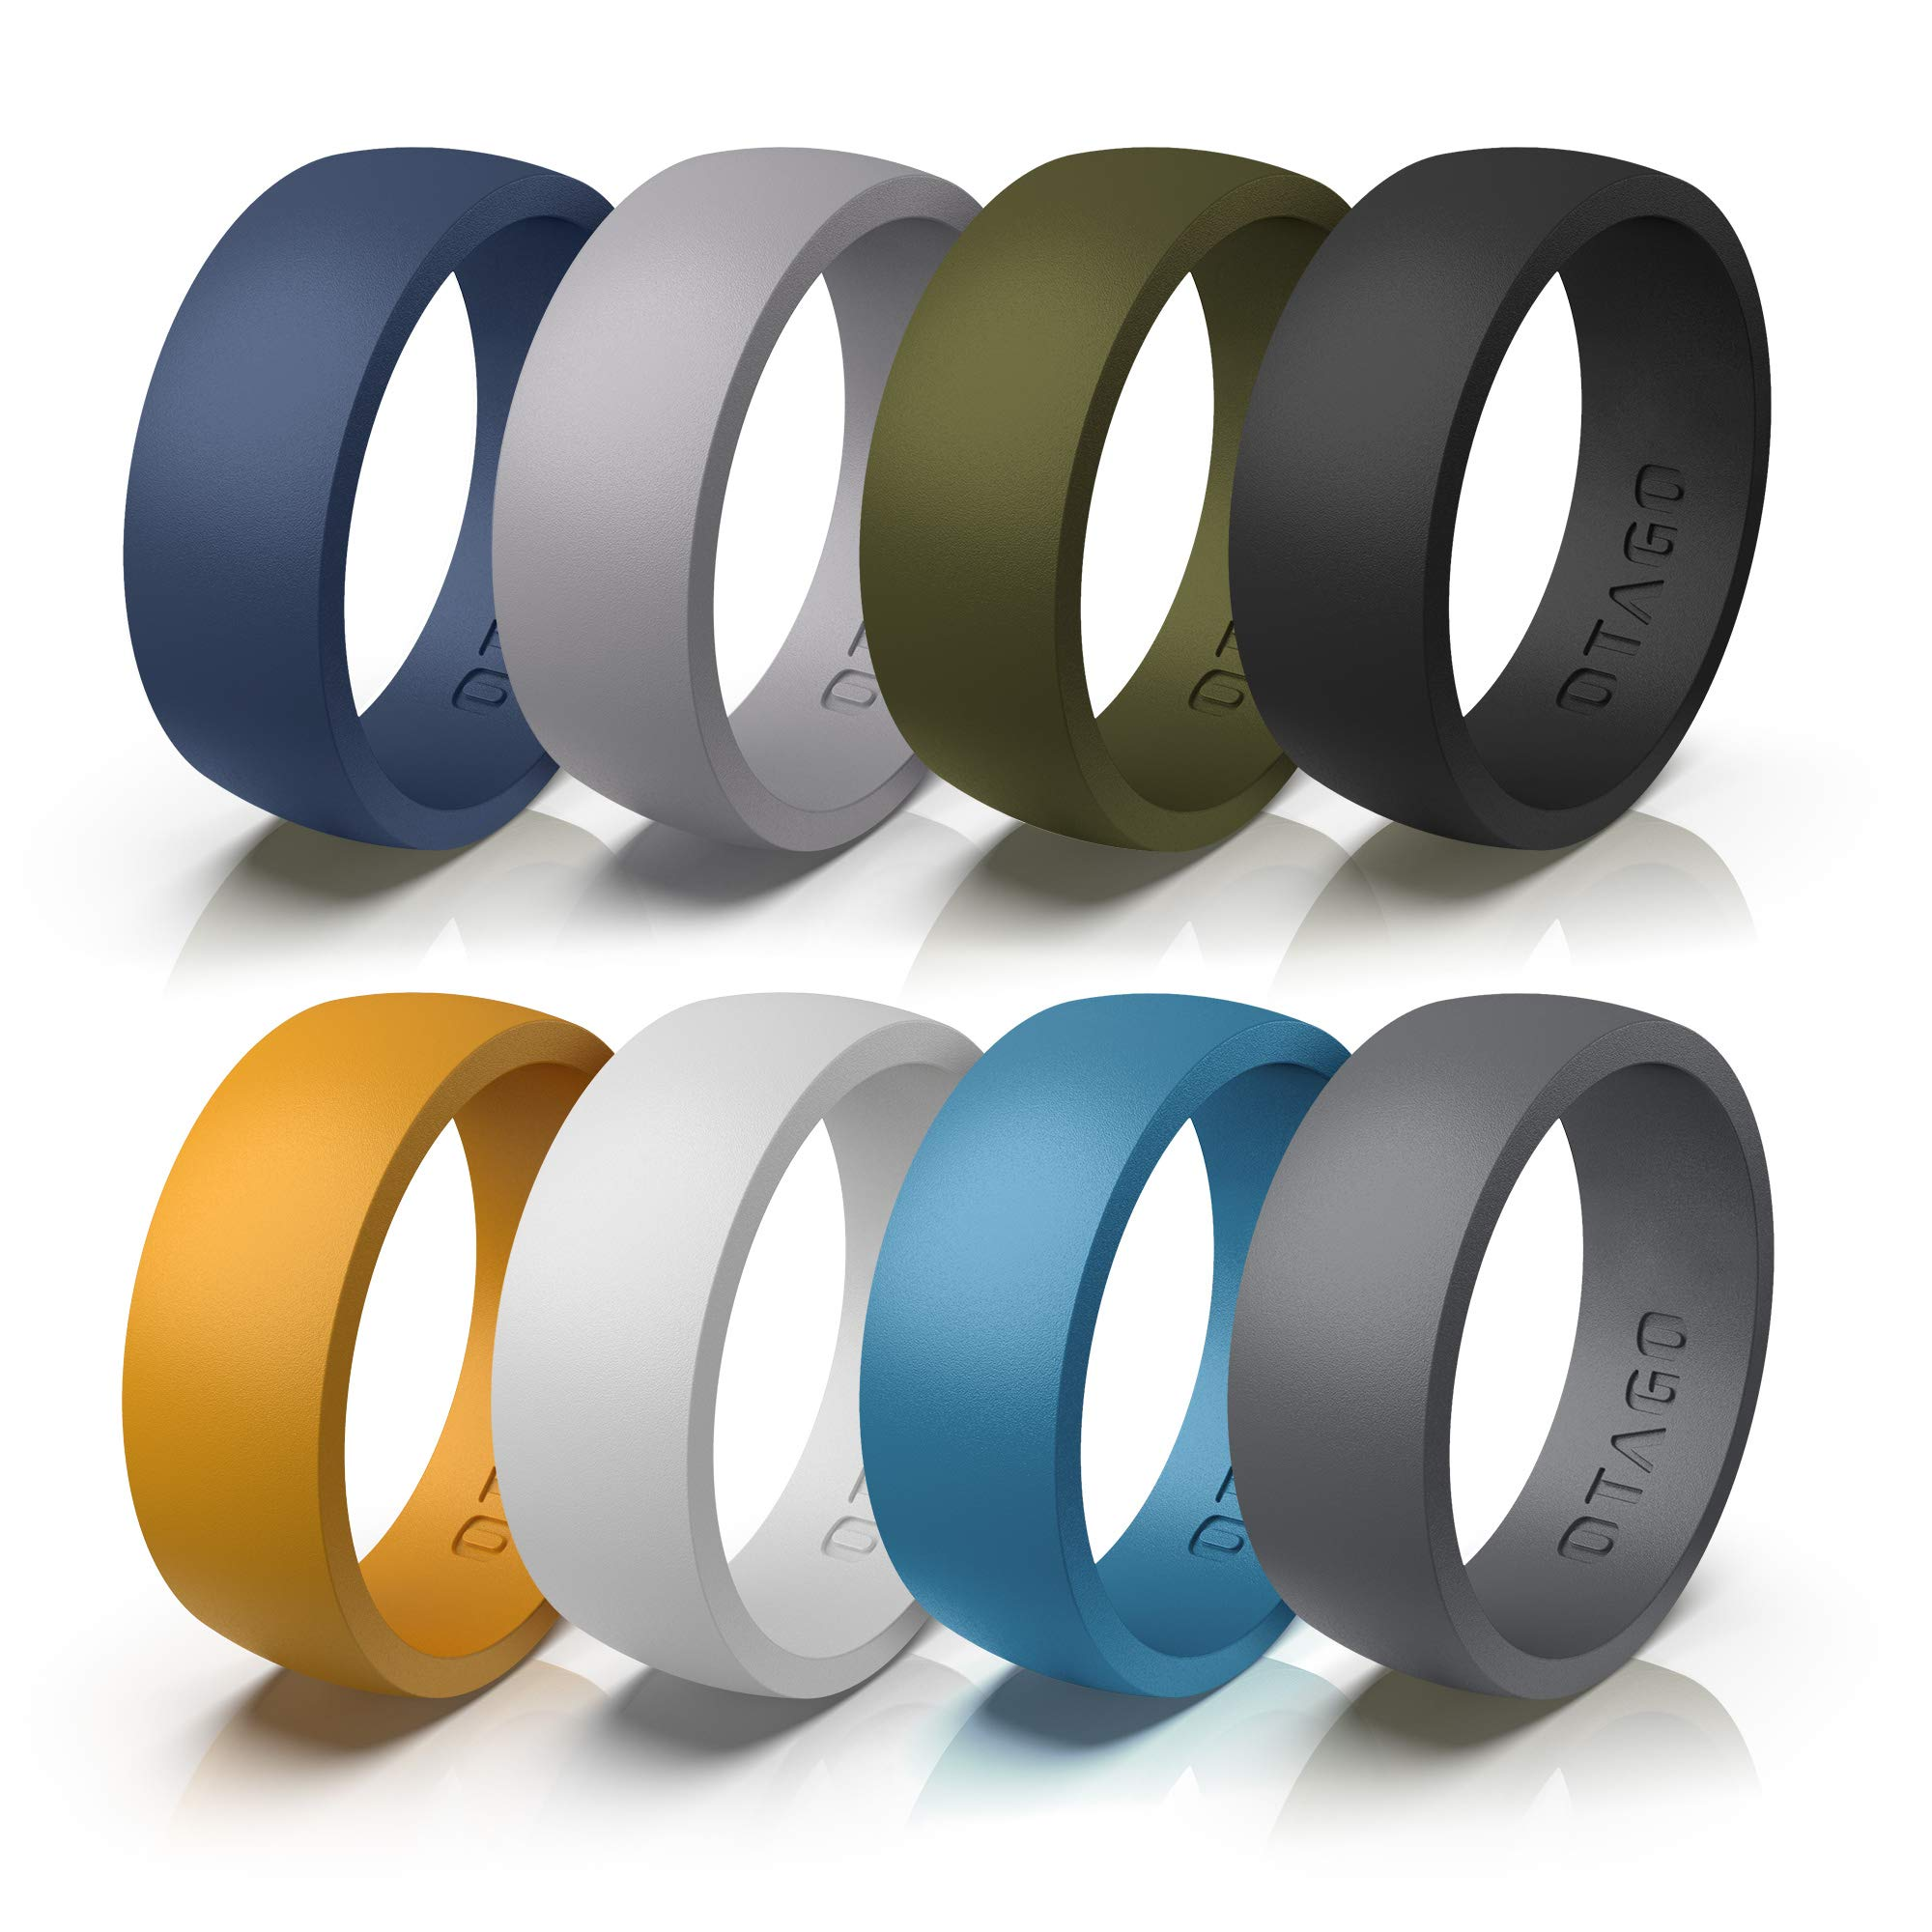 OTAGO Silicone Rings Wedding Bands for Women Men 8 Colorful Rings Soft and Safe for Sports Housework,Comfortable Fit,Fashion Adorable Wedding Ring Replacement(Size7-14)